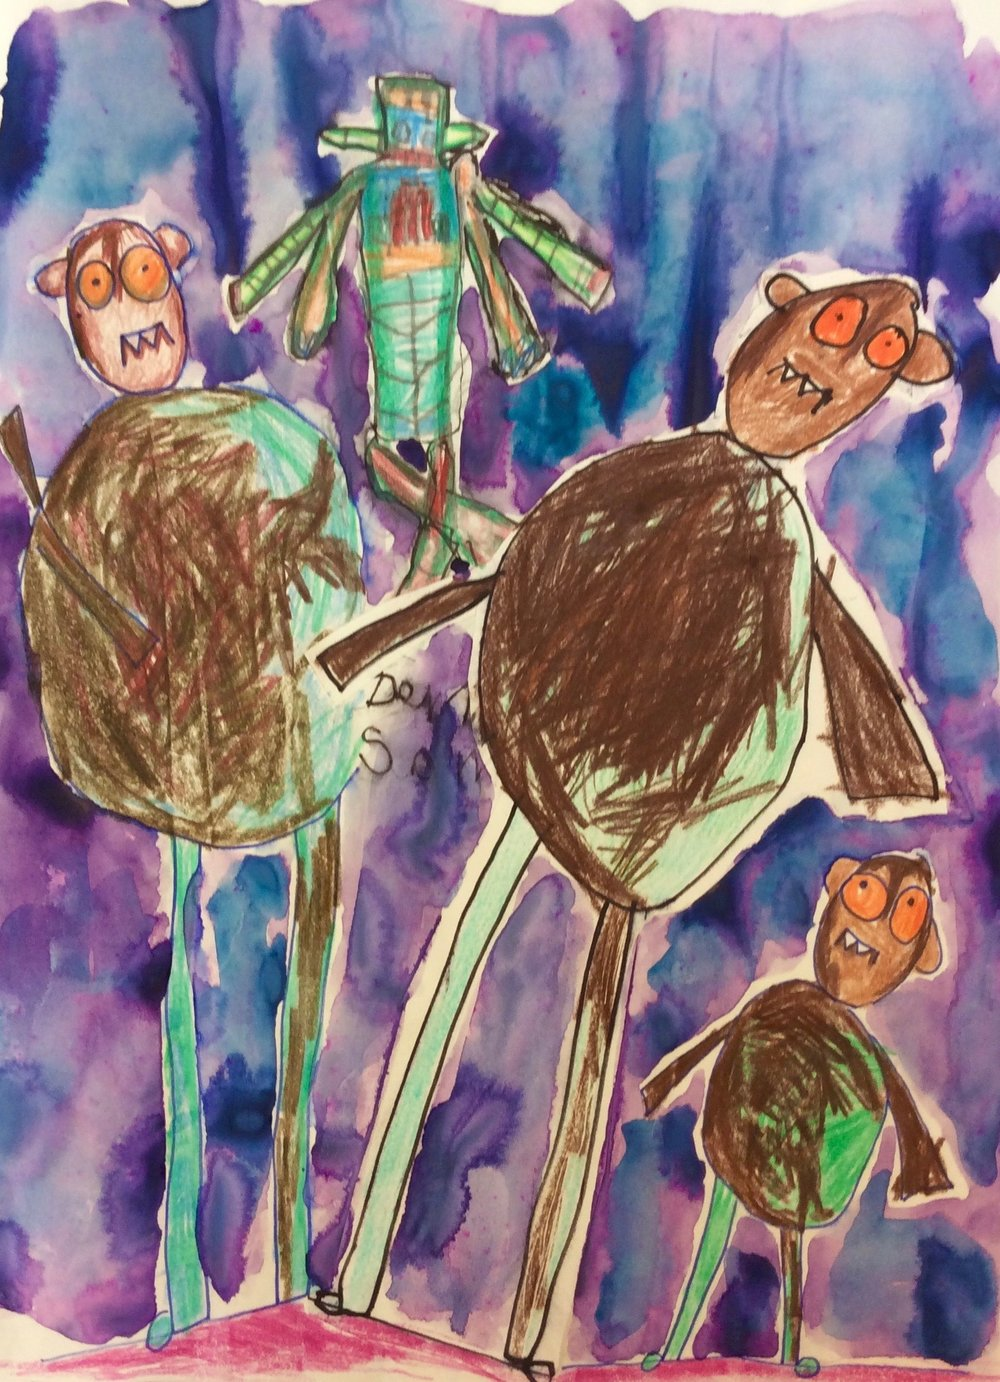 Duplicating Kindergarten Monster Drawing and collage with discarded student drawing